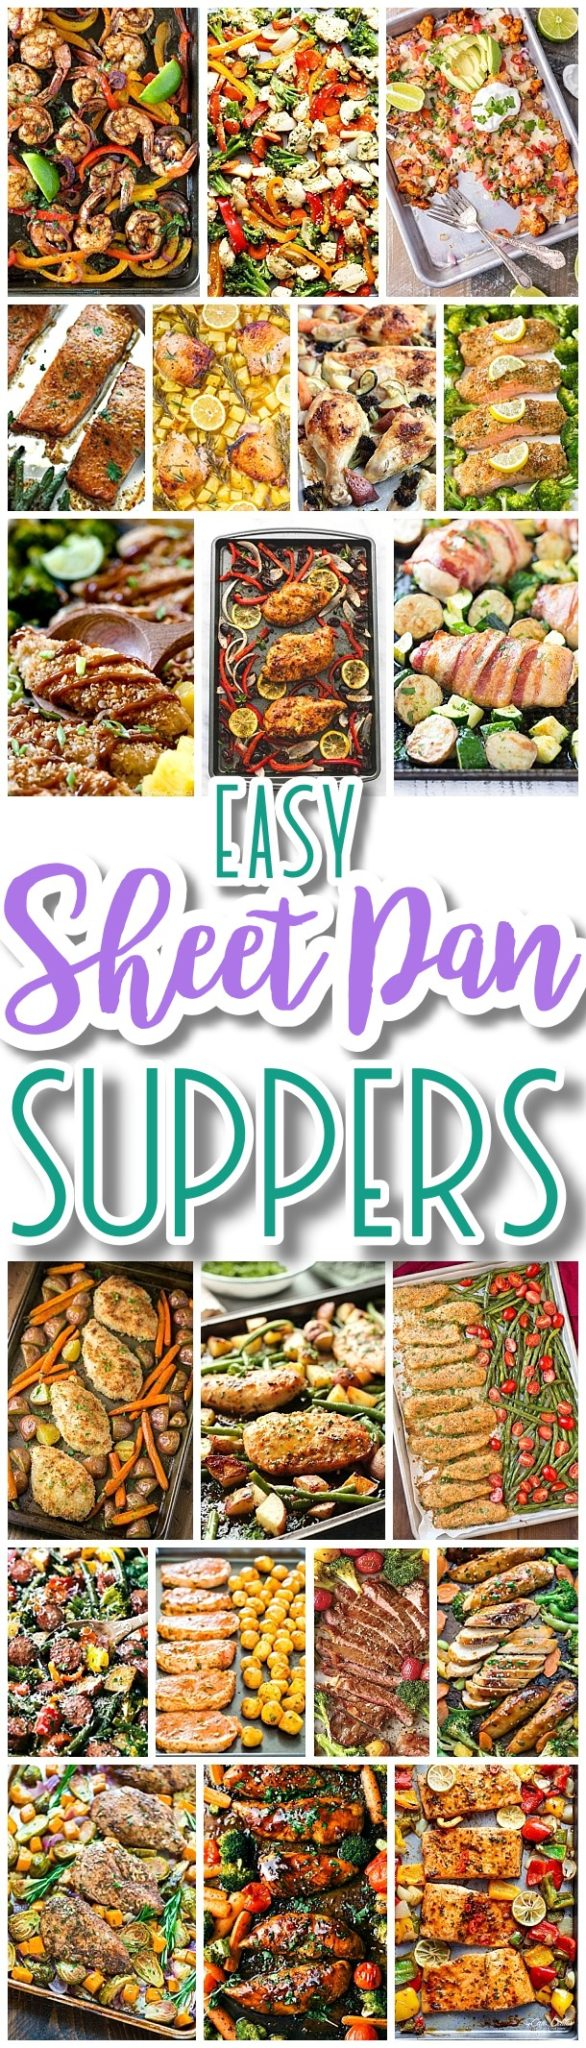 The BEST Sheet Pan Suppers Recipes - Easy and Quick Family Lunch and Simple Dinner Meal Ideas using only ONE baking SHEET PAN - Dreaming in DIY #sheetpansuppers #sheetpanrecipes #sheetpandinners #30minutemeals #30minutedinners #thirtyminutedinners #30minuterecipes #fastrecipes #easyrecipes #quickrecipes #mealprep #simplefamilymeals #simplefamilyrecipes #simplerecipes